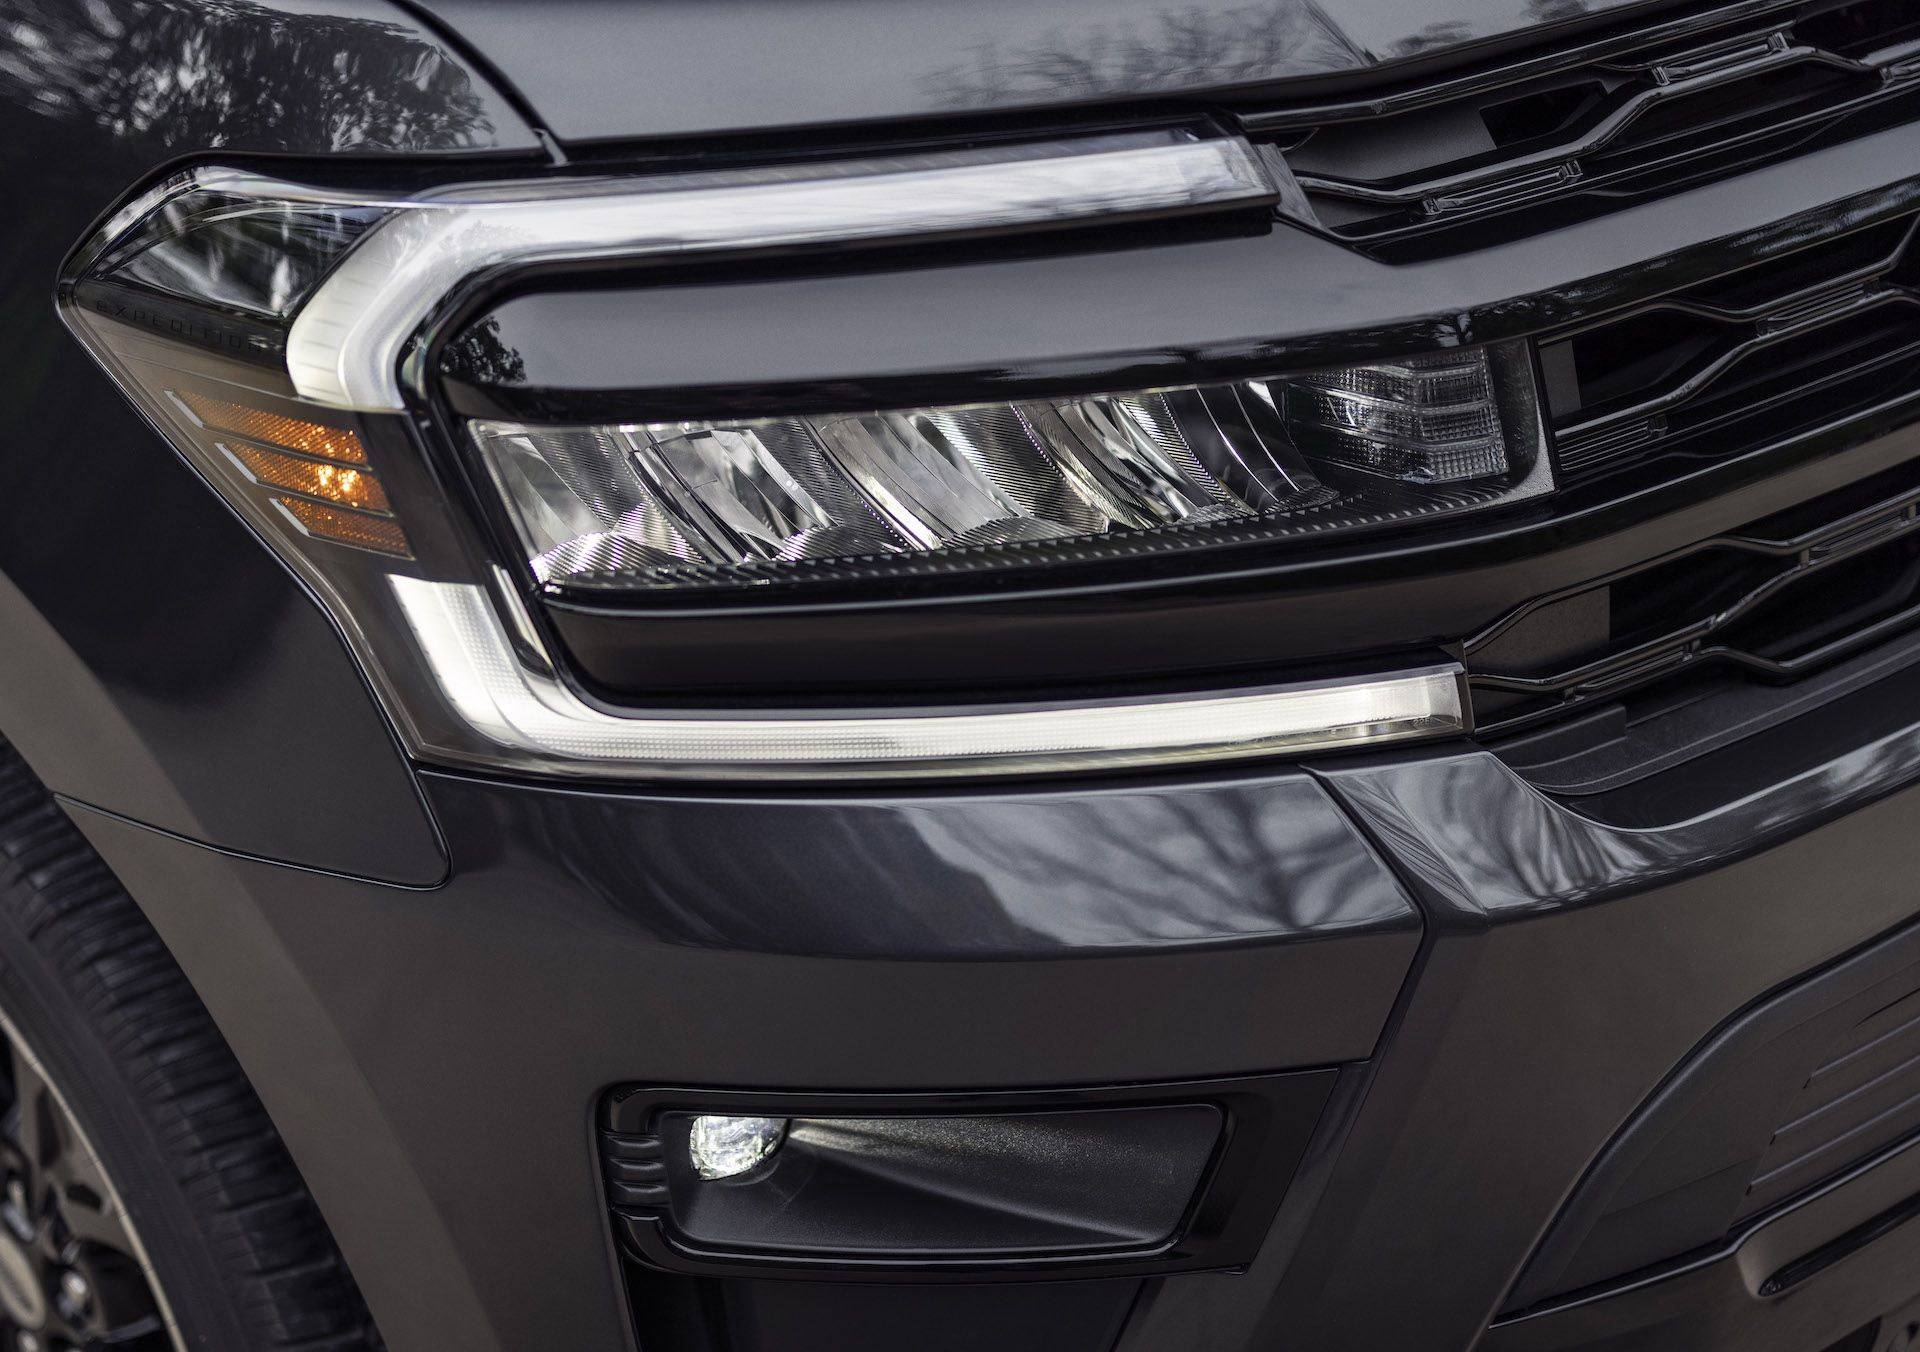 2022-Ford-Expedition-Stealth-00015-1